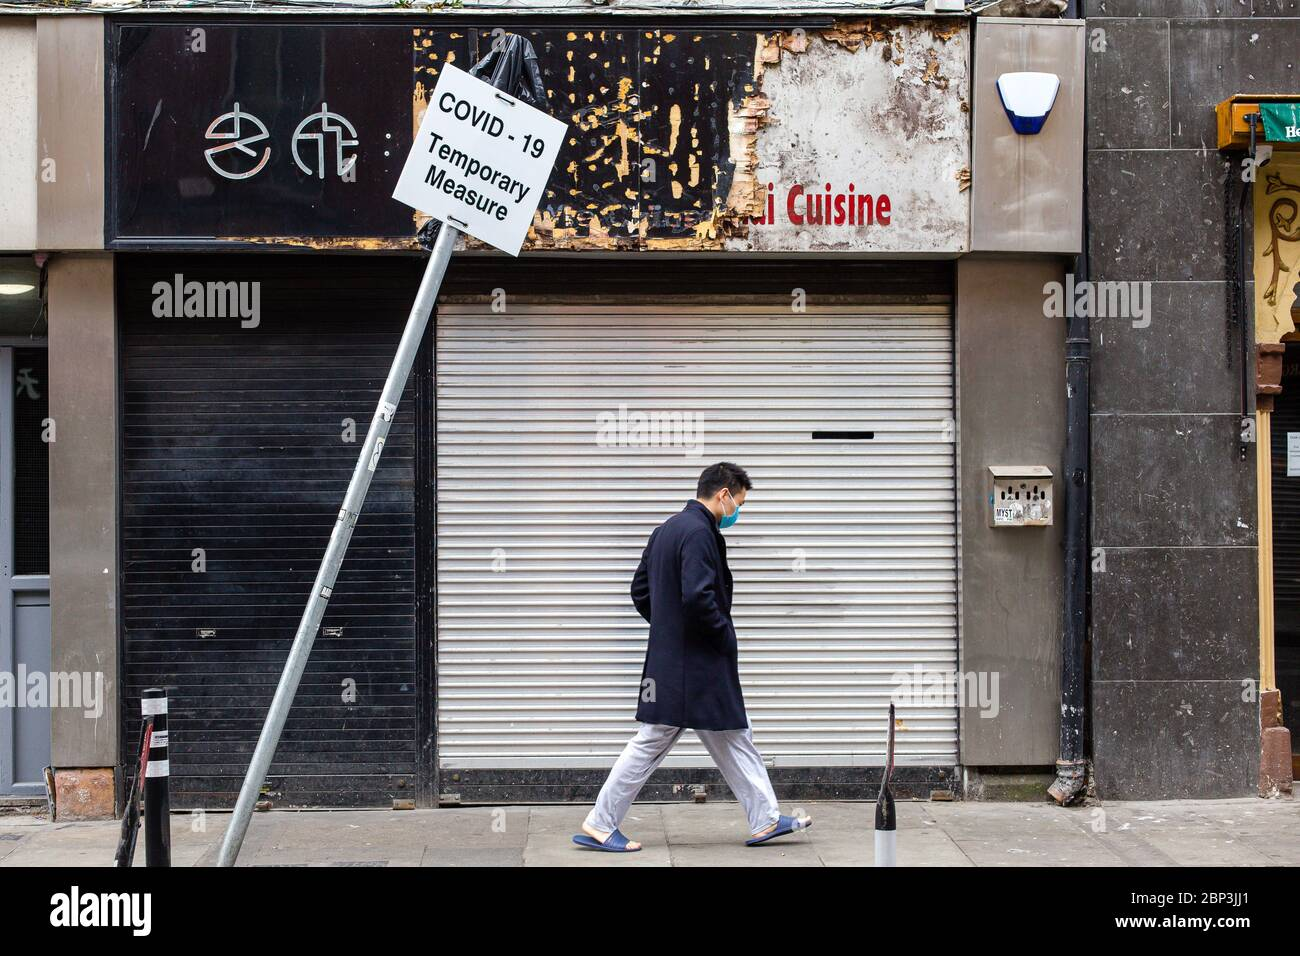 Asian Man wearing protective face mask passes by closed down shop and leaning sign - Covid-19 Temporary Measure. Coronavirus economic impact Ireland. Stock Photo